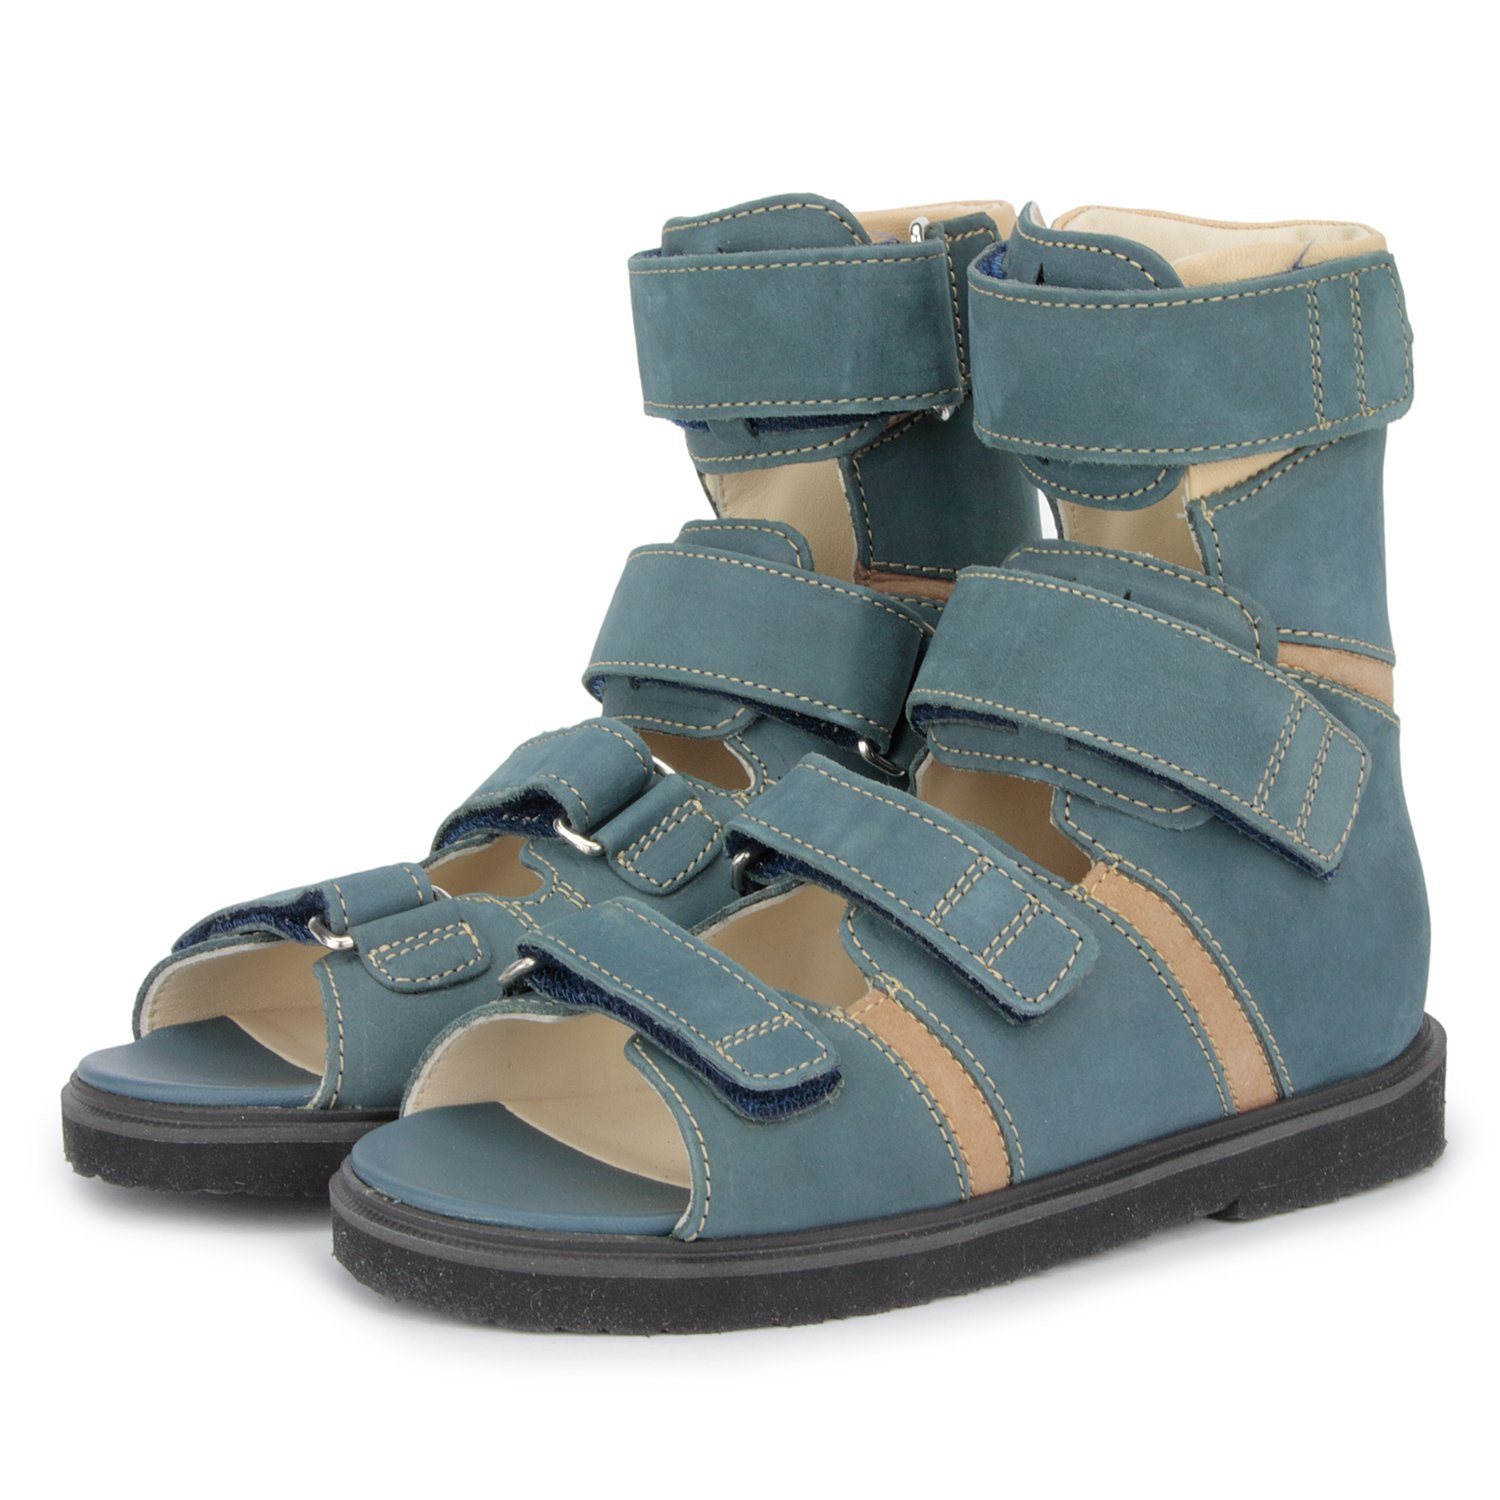 Memo Basic 1CH Suede CP Kids AFO Brace Sandal, 12.5 Little Kid M (30) by Memo (Image #9)